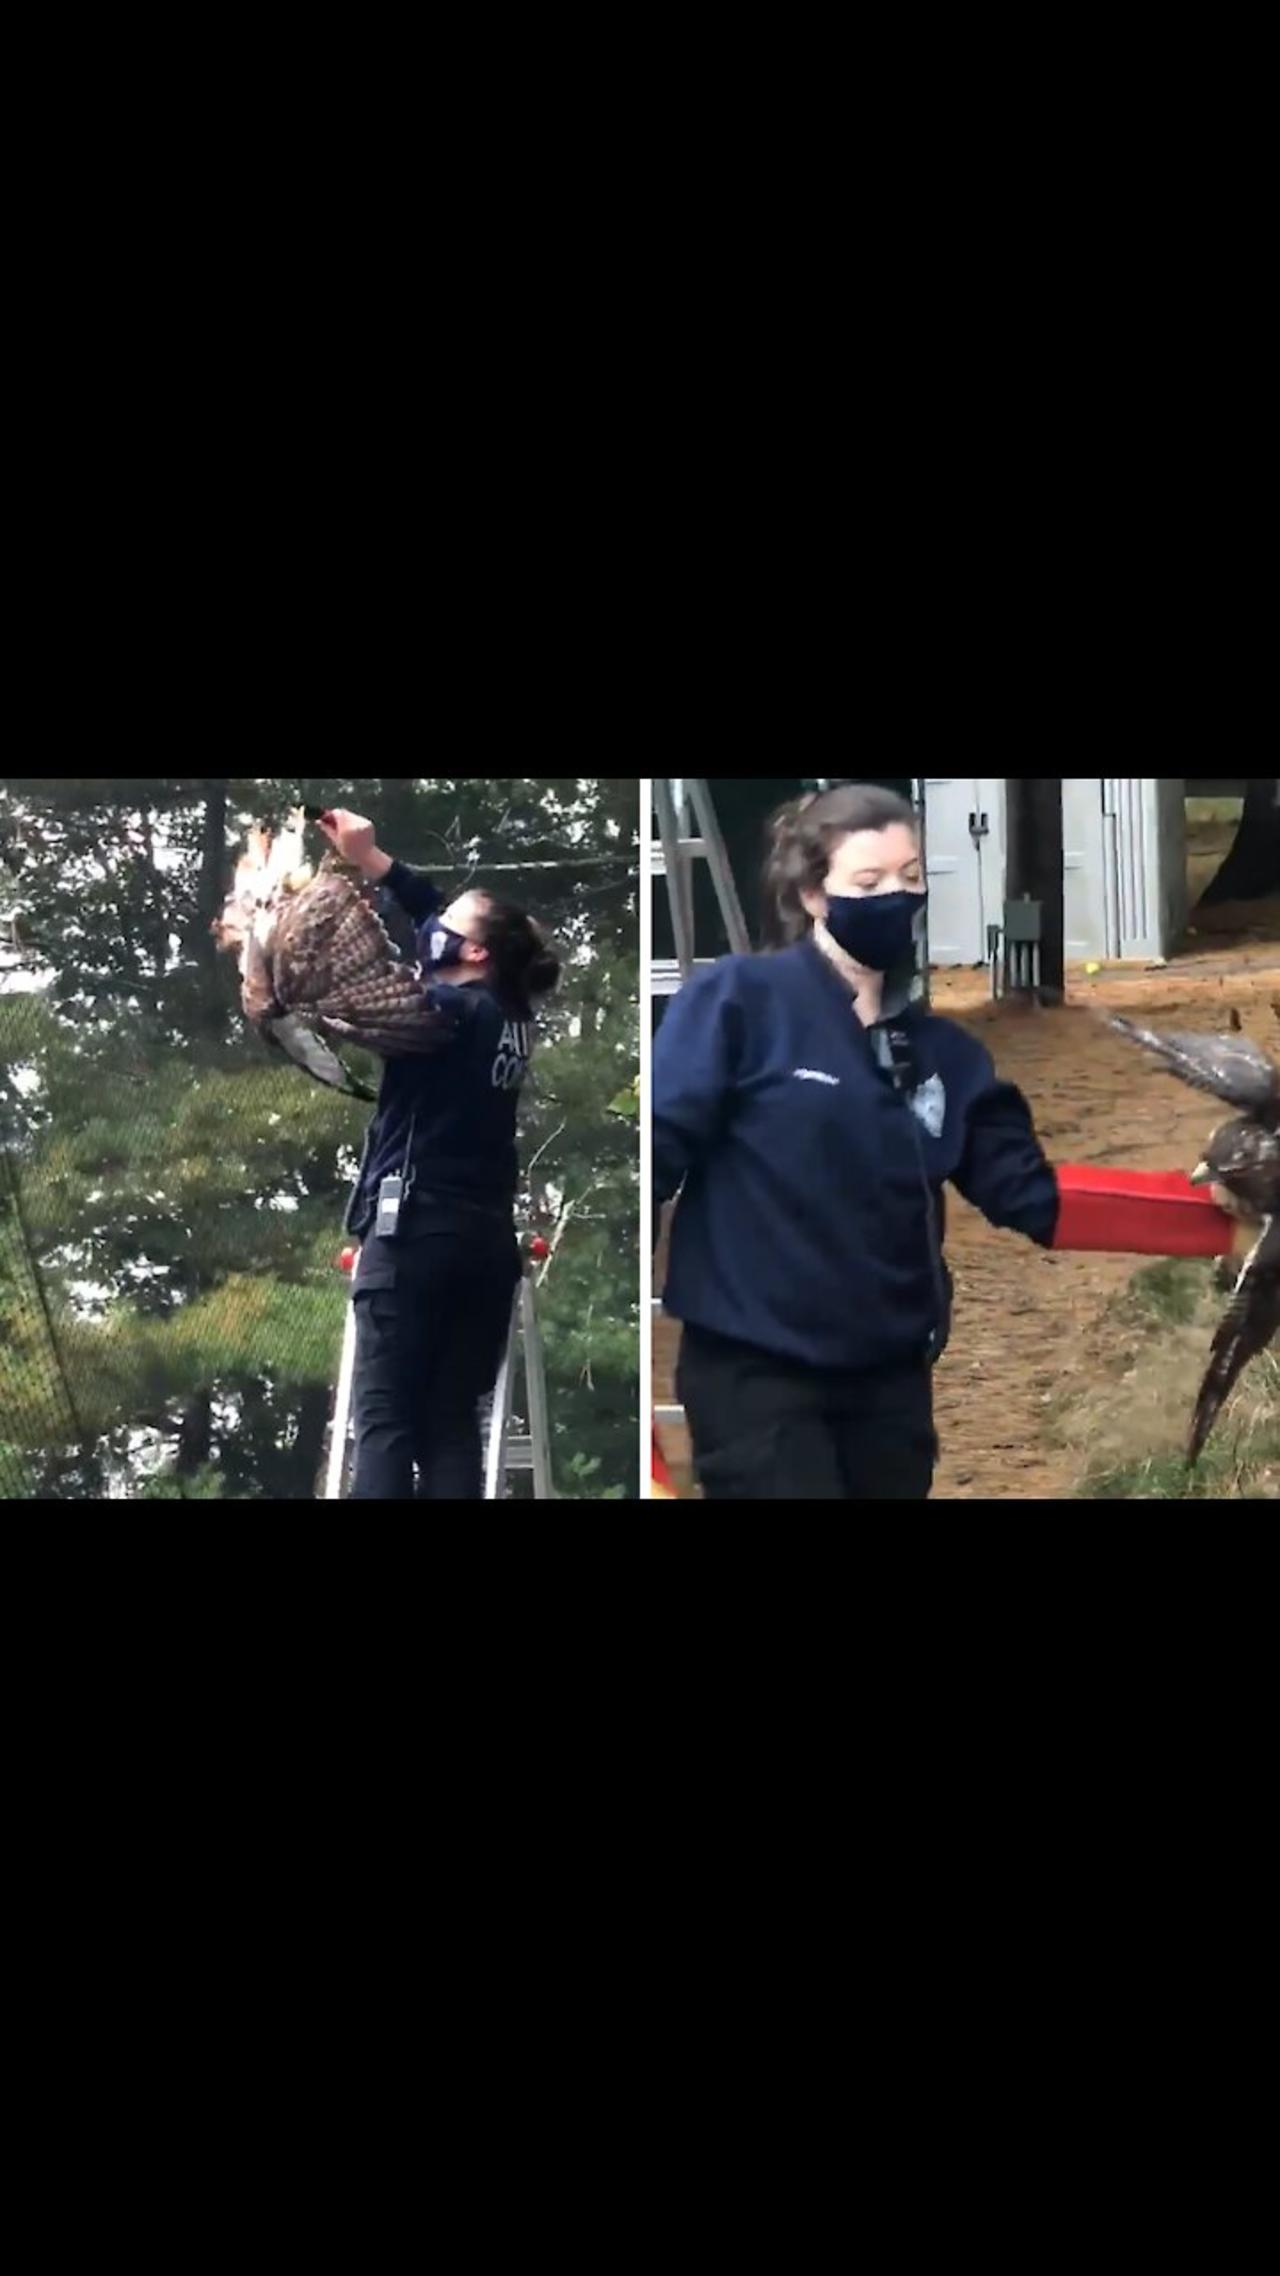 Police rescue Red-tailed hawk from certain death